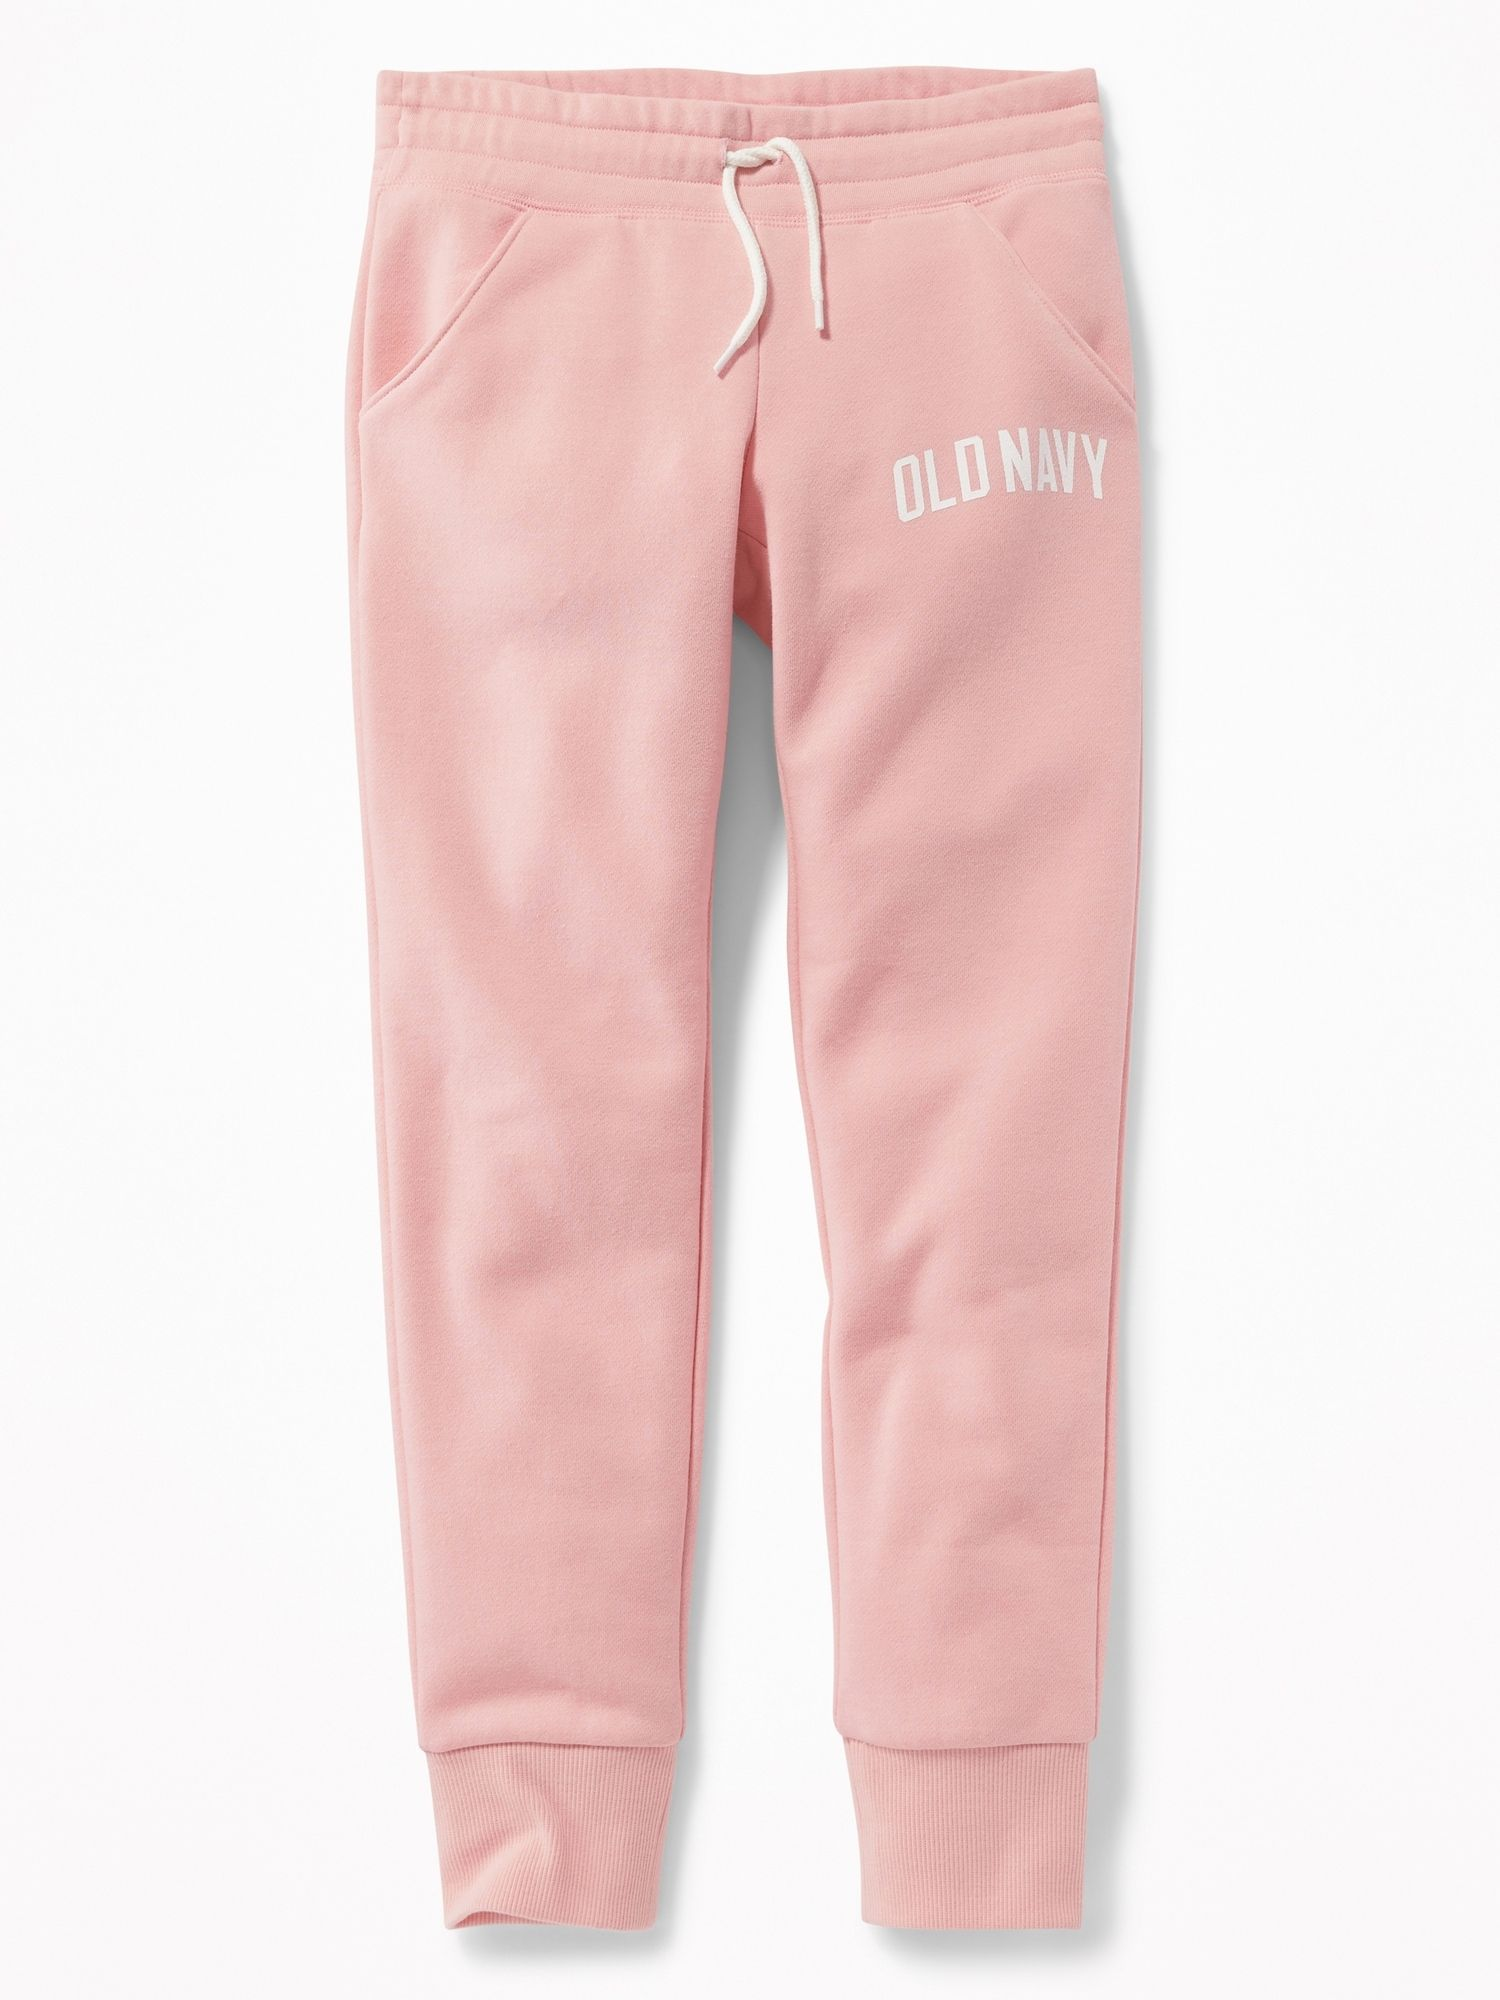 Relaxed LogoGraphic Joggers for Girls Girls joggers